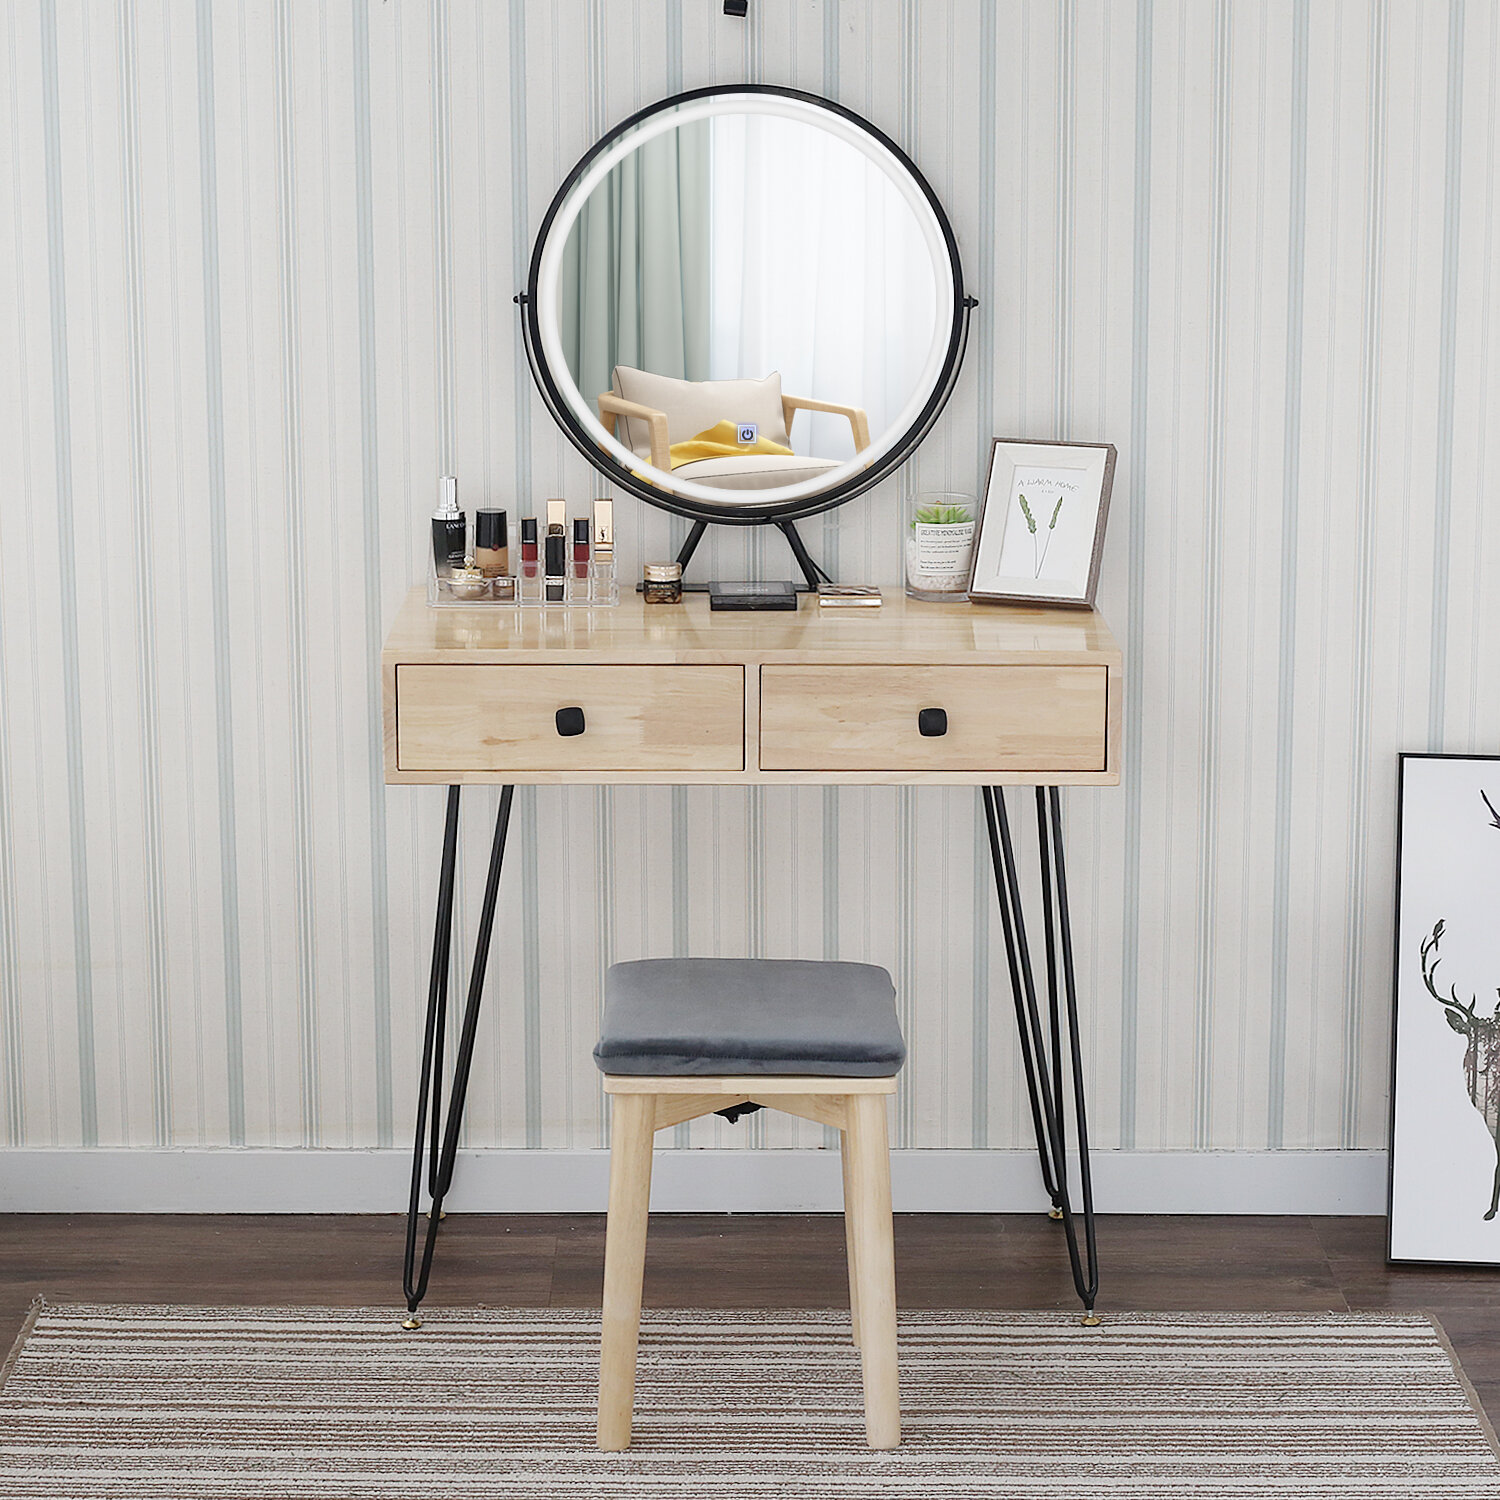 Brayden Studio Shaikh Solid Wood Vanity Set With Stool And Mirror Reviews Wayfair